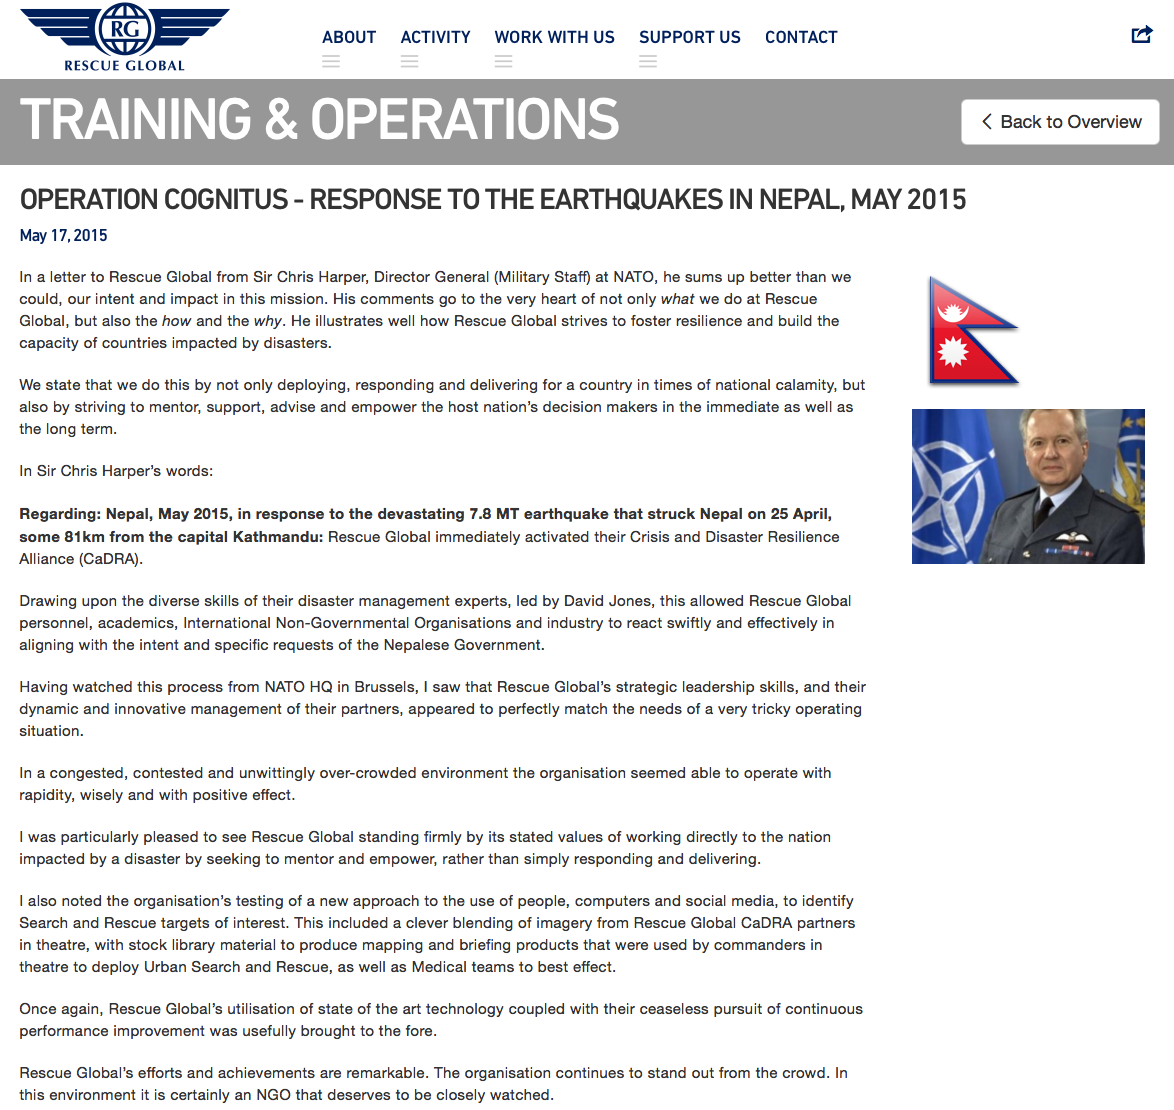 Operation Cognitus - Response to the Earthquakes in Nepal, May 2015